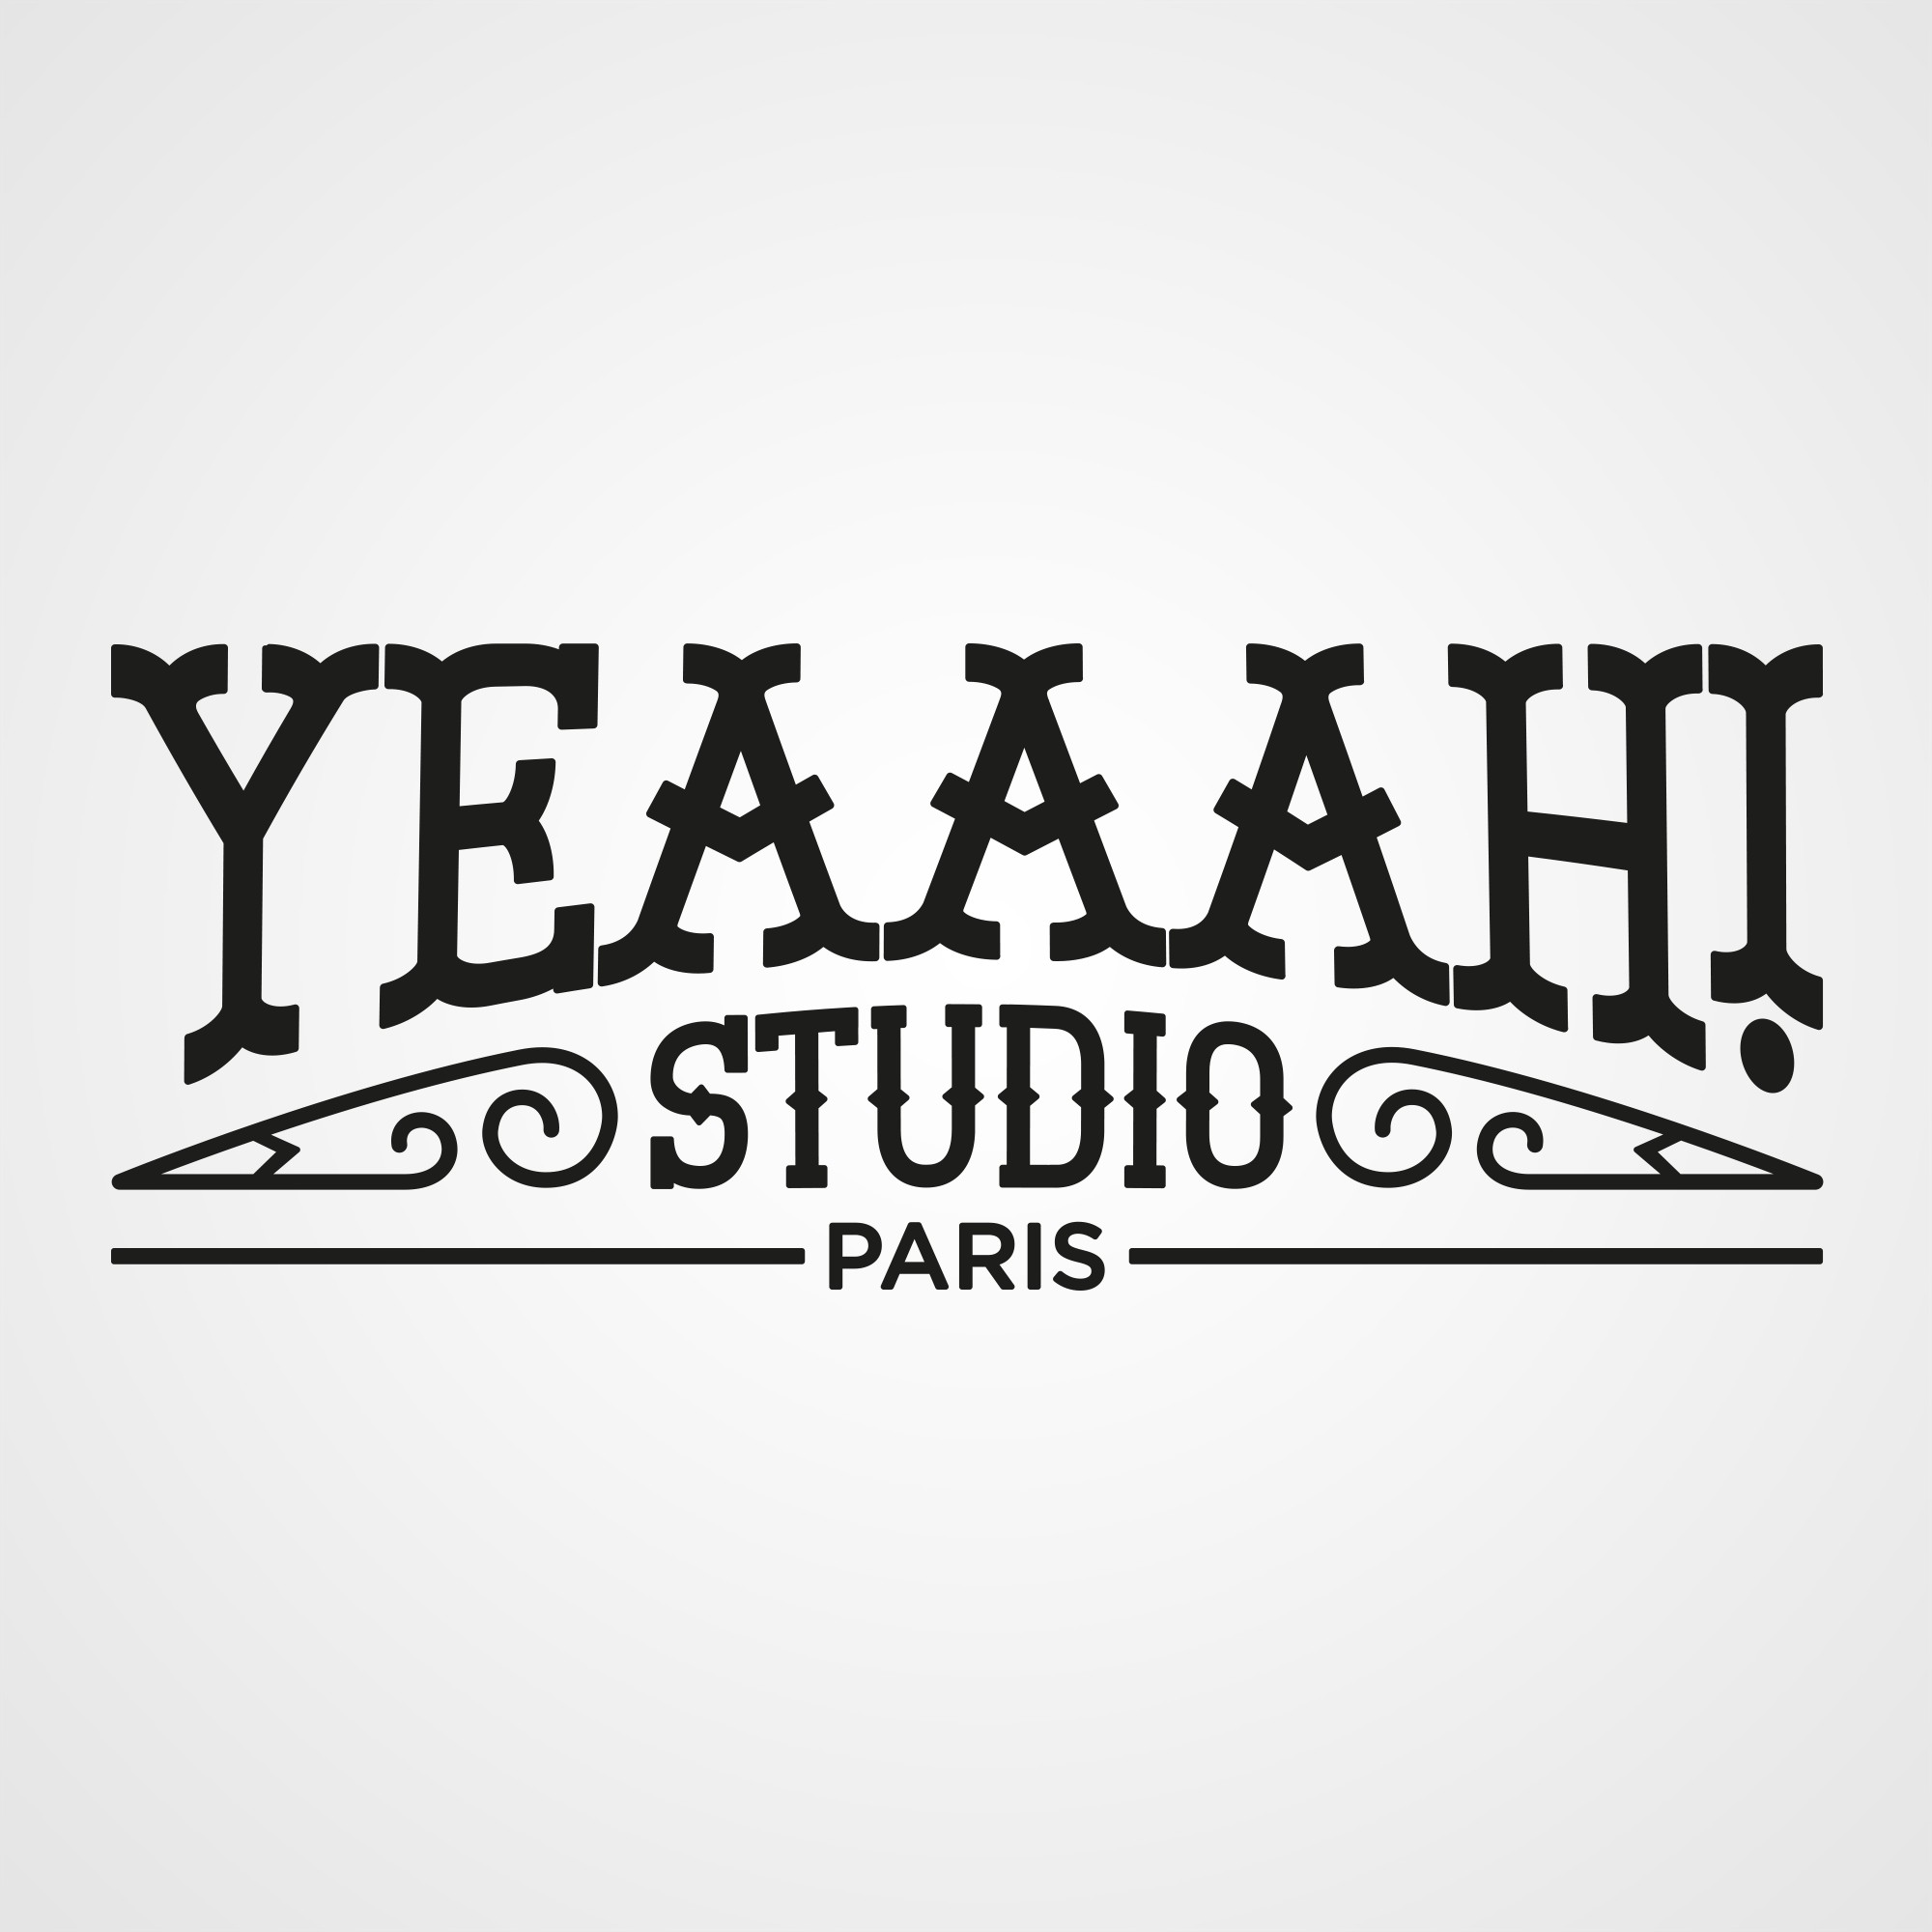 Yeaaah! Studio / Stéphane Casier